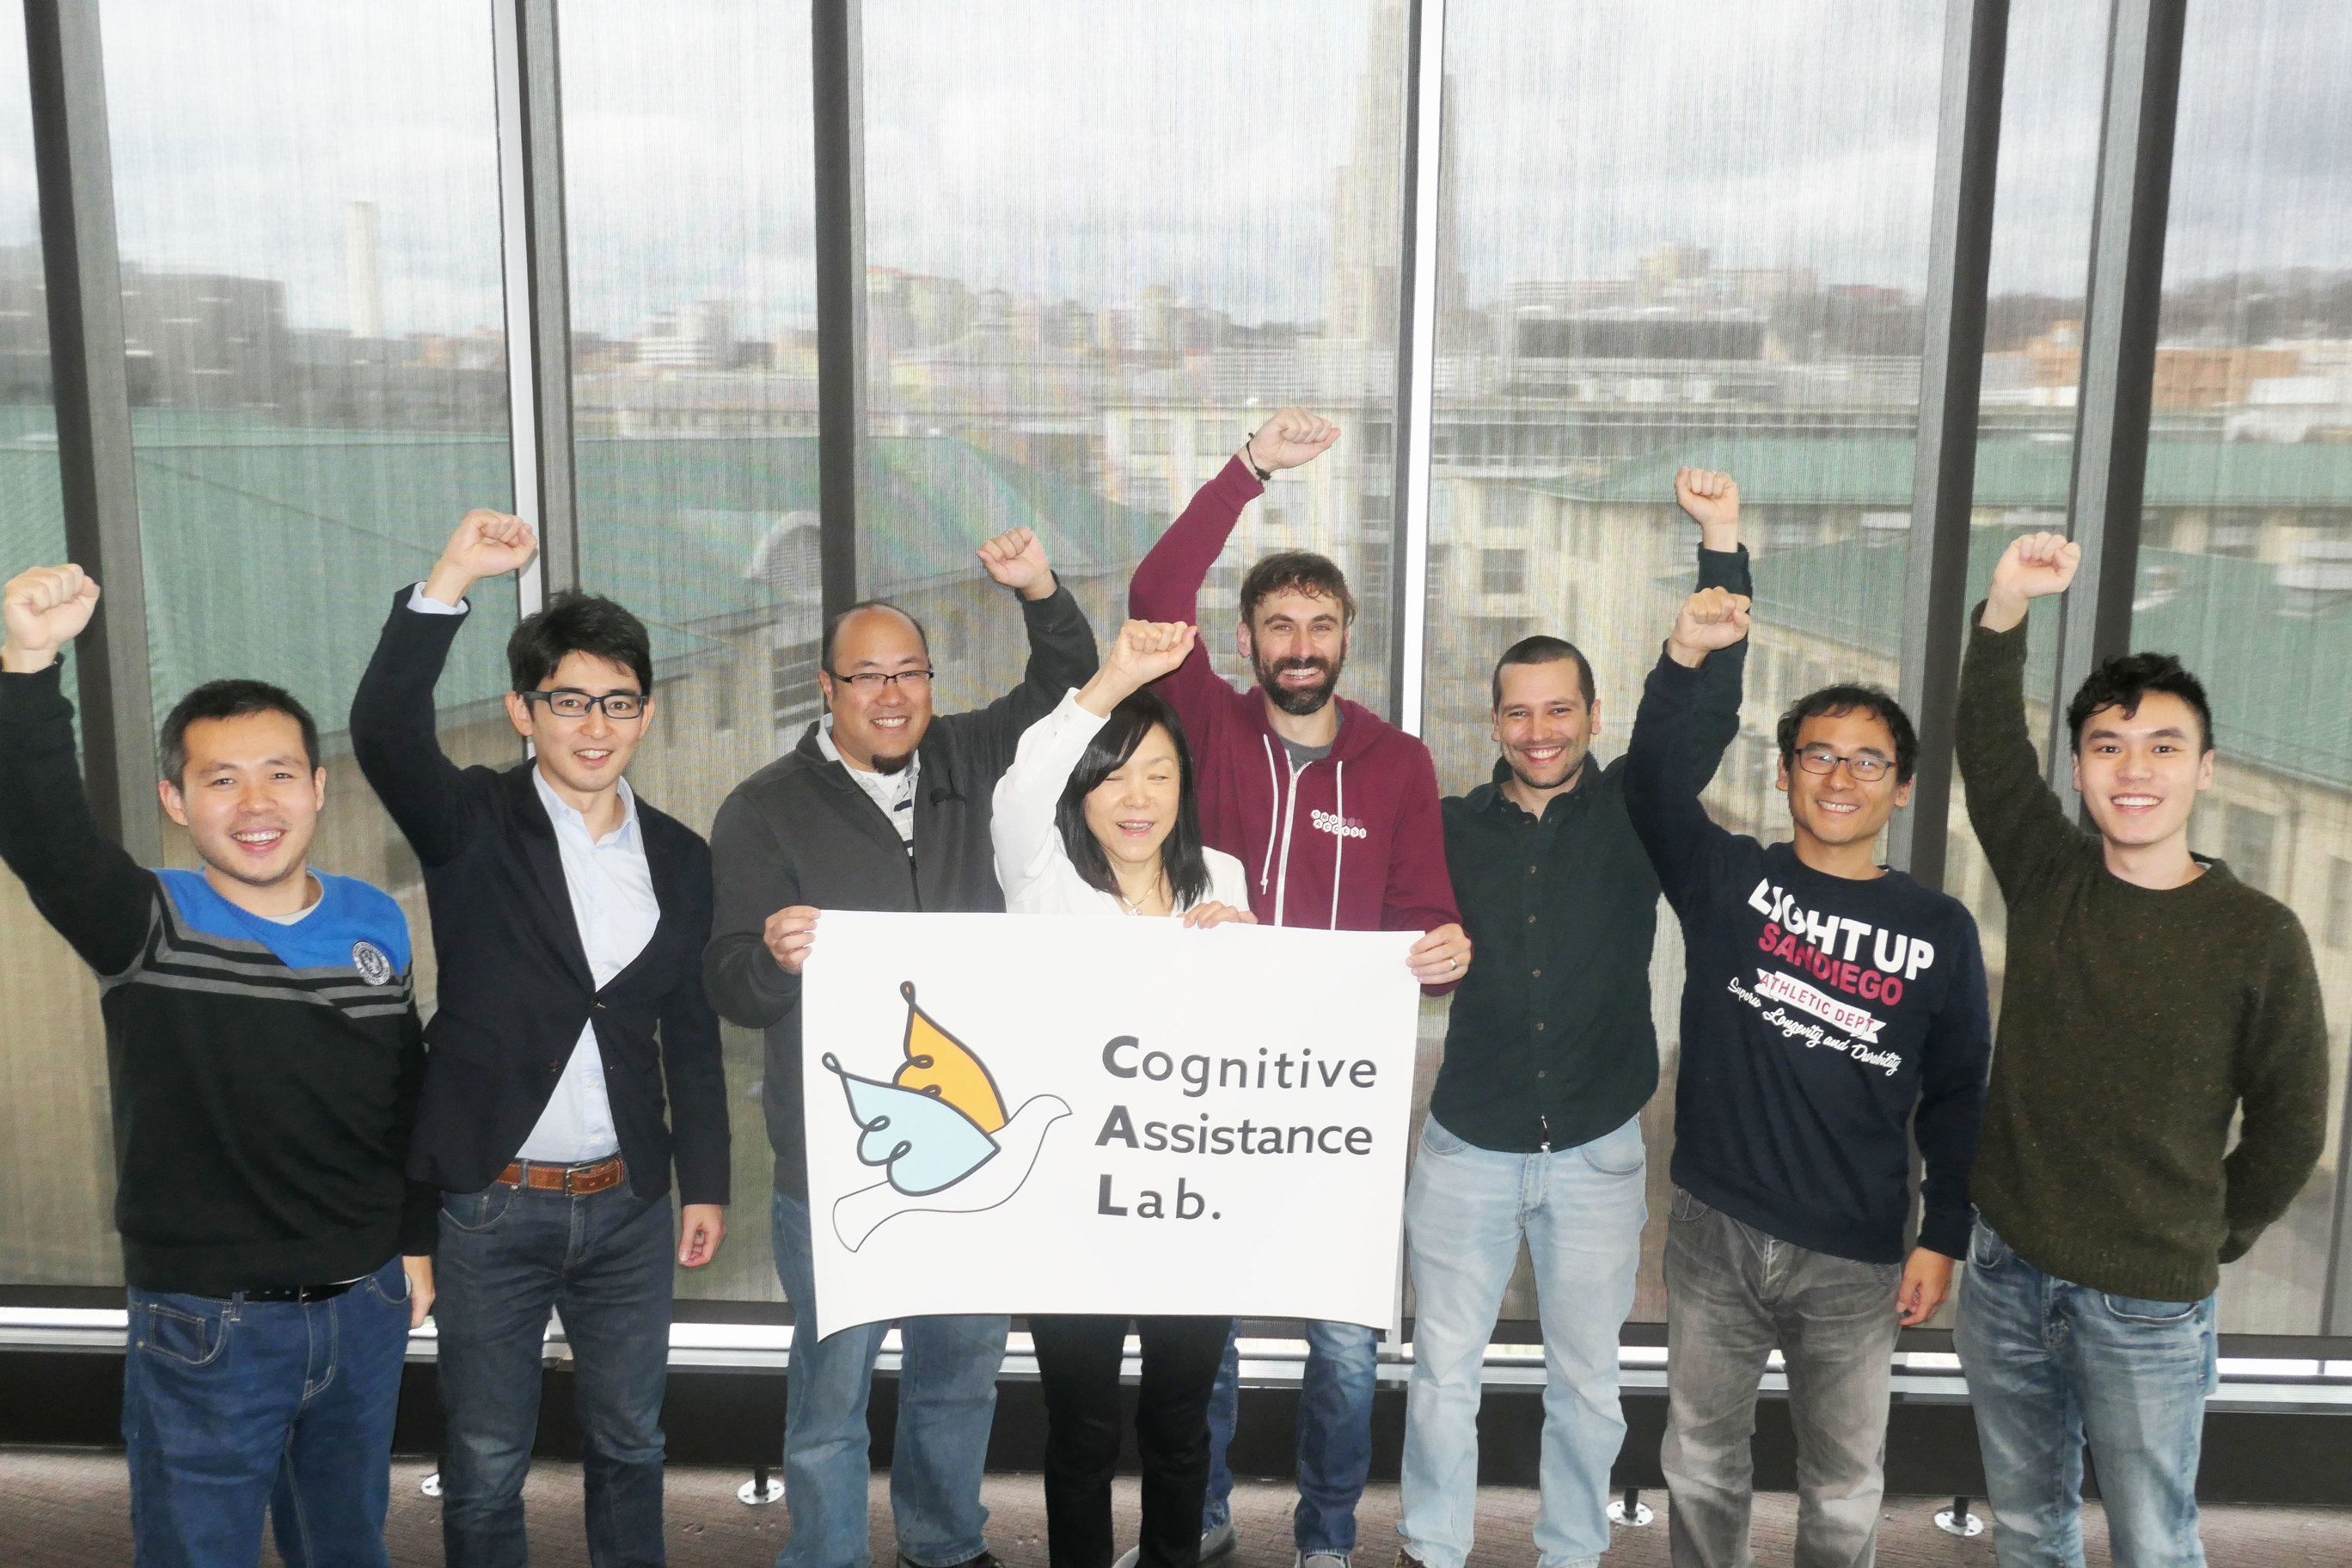 members of cognitive assistance lab.